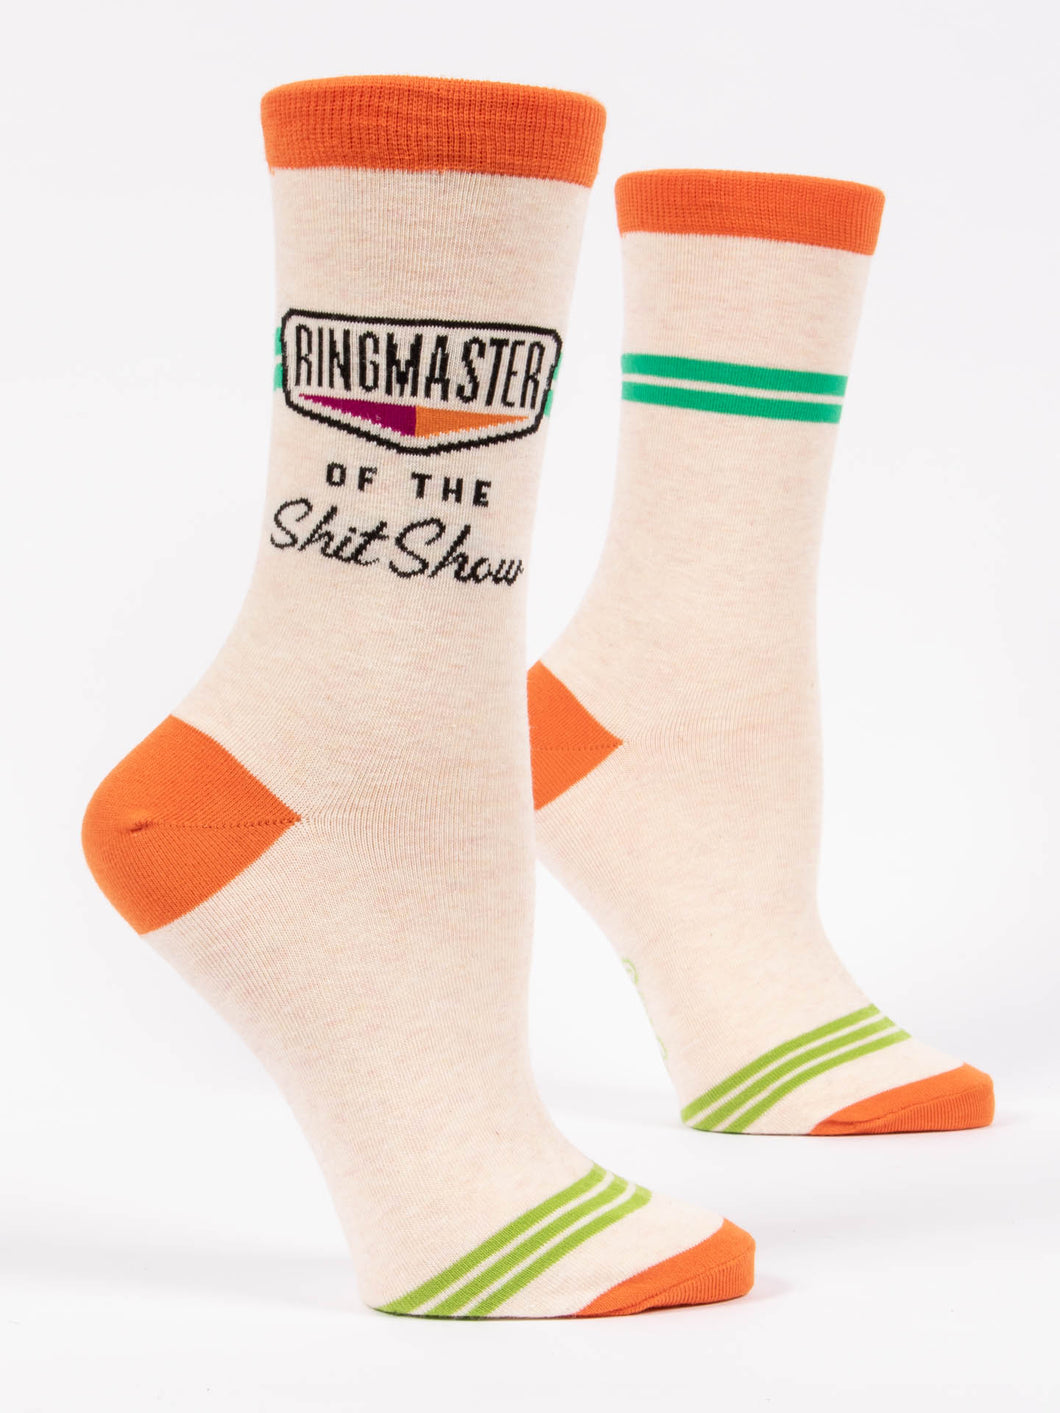 blue q Crew Socks -Ringmaster of the Shitshow